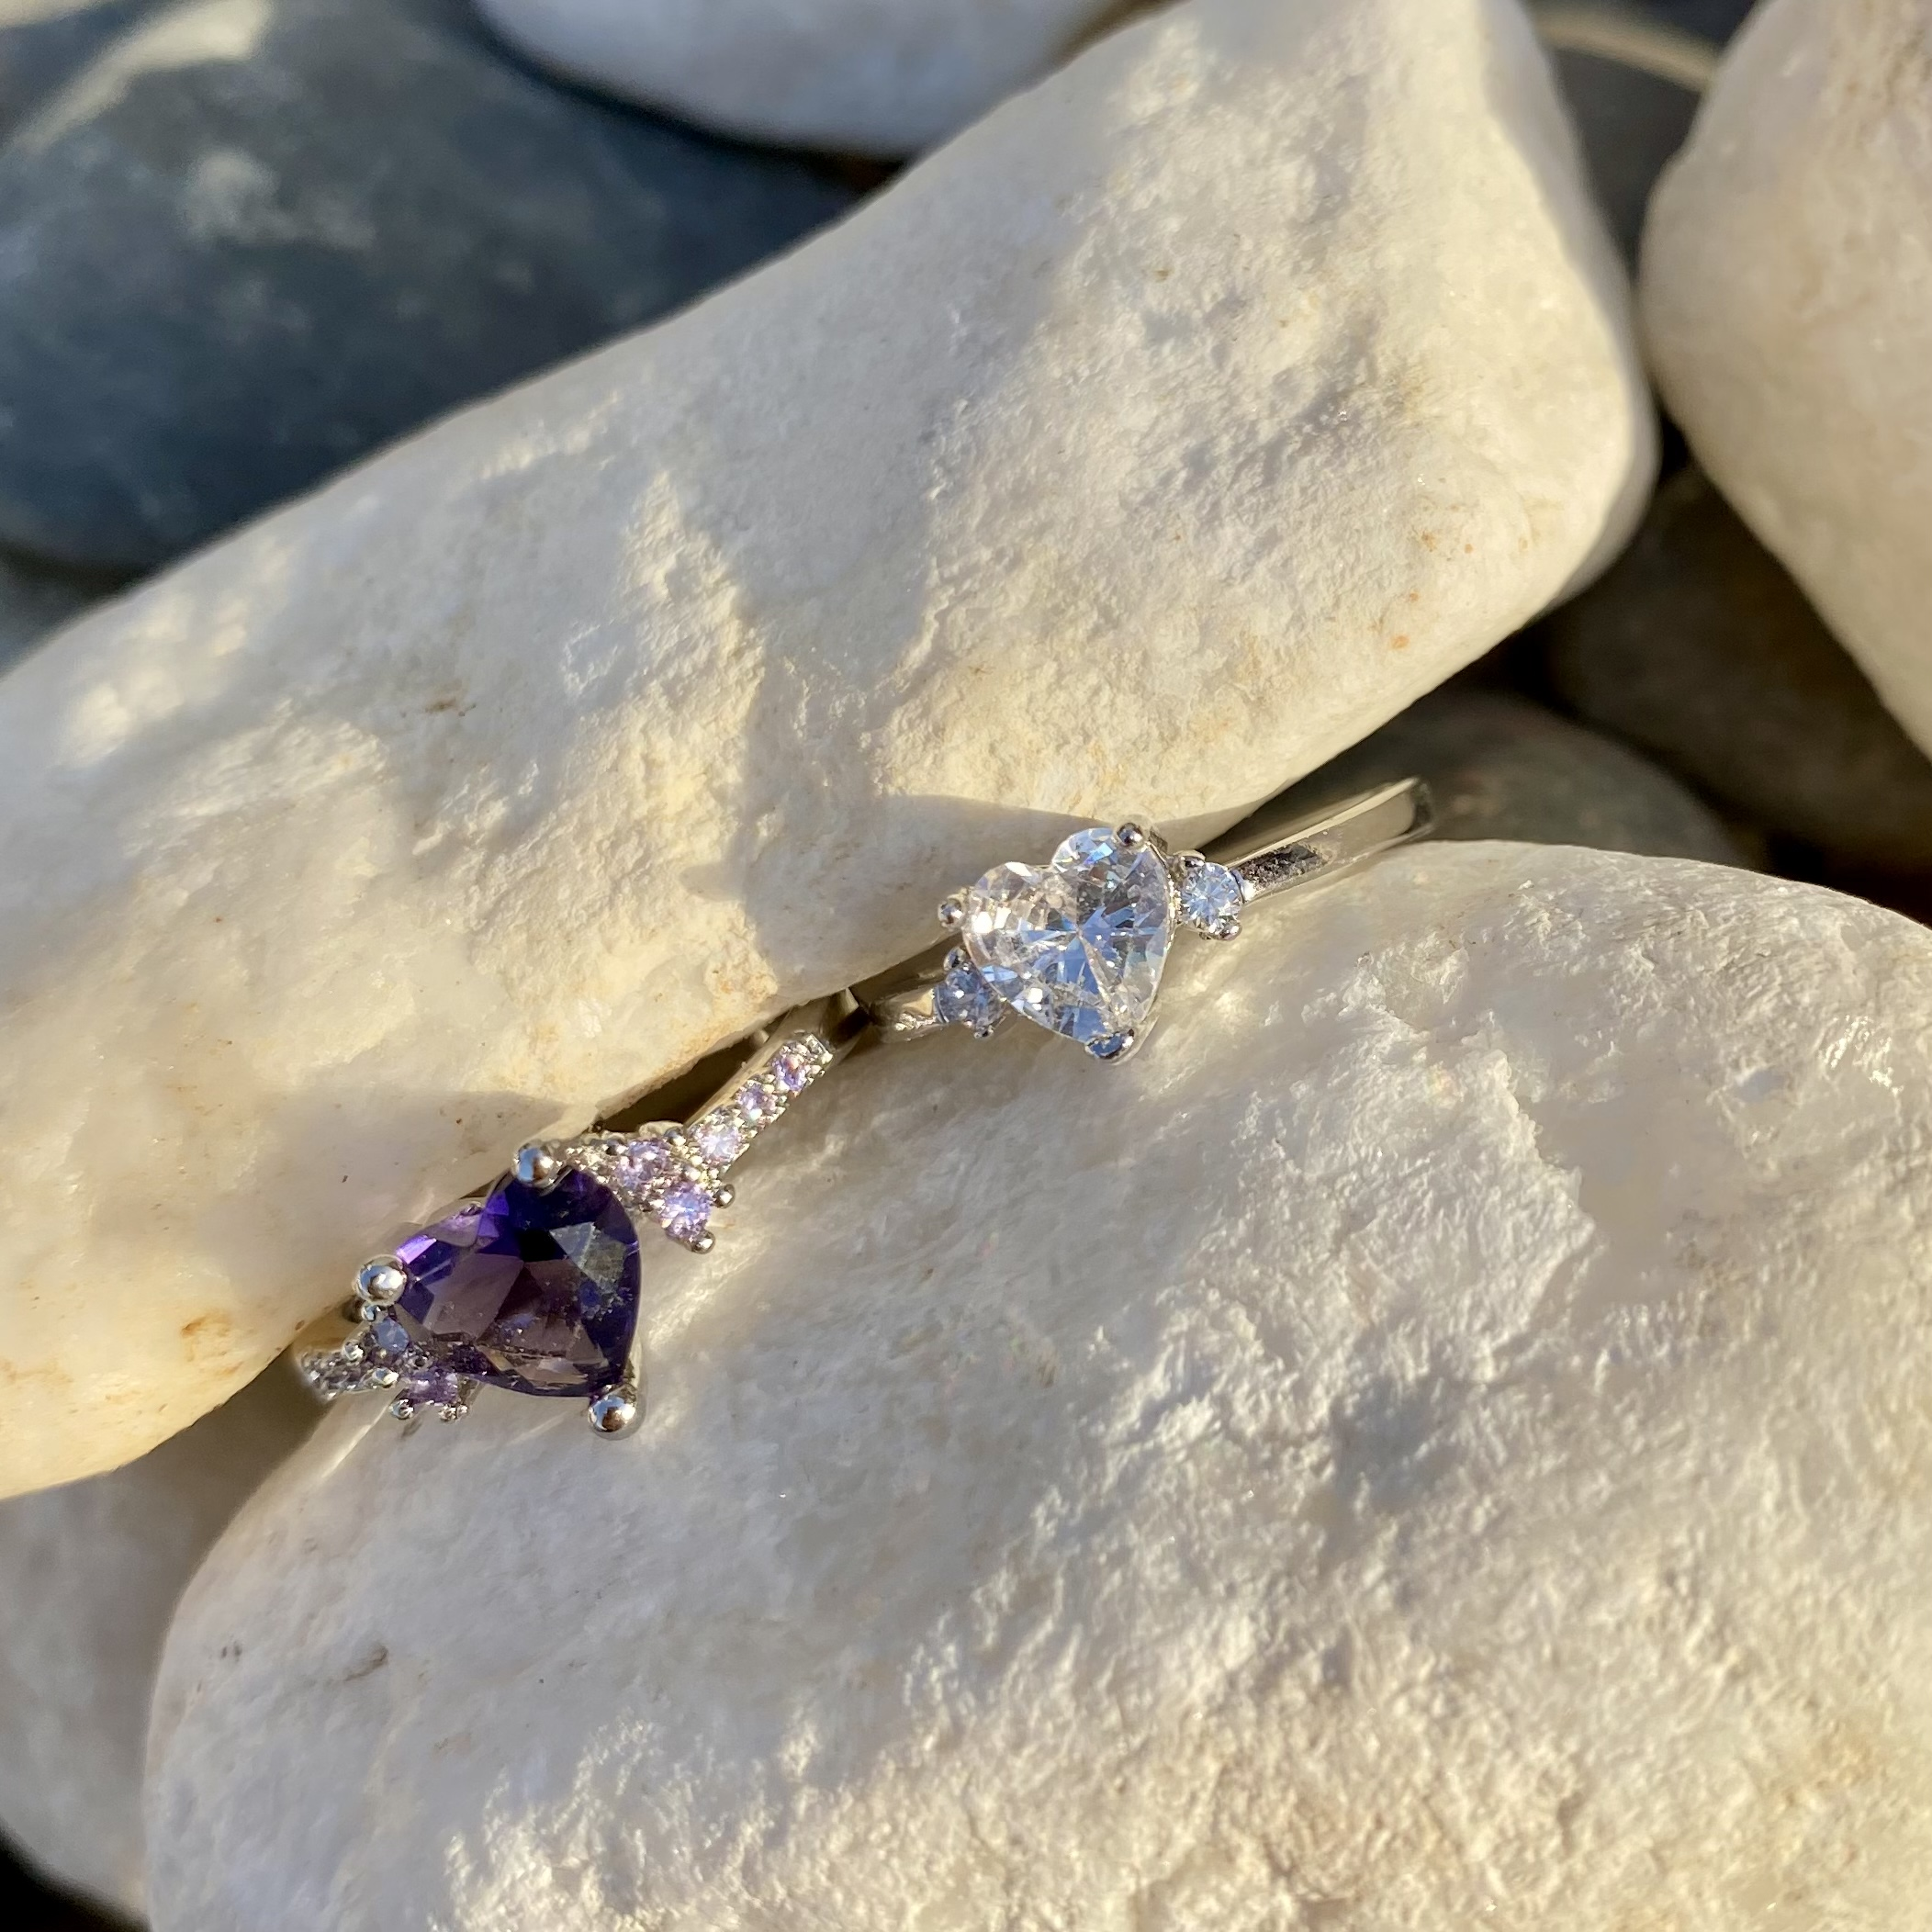 The crystal heart ring